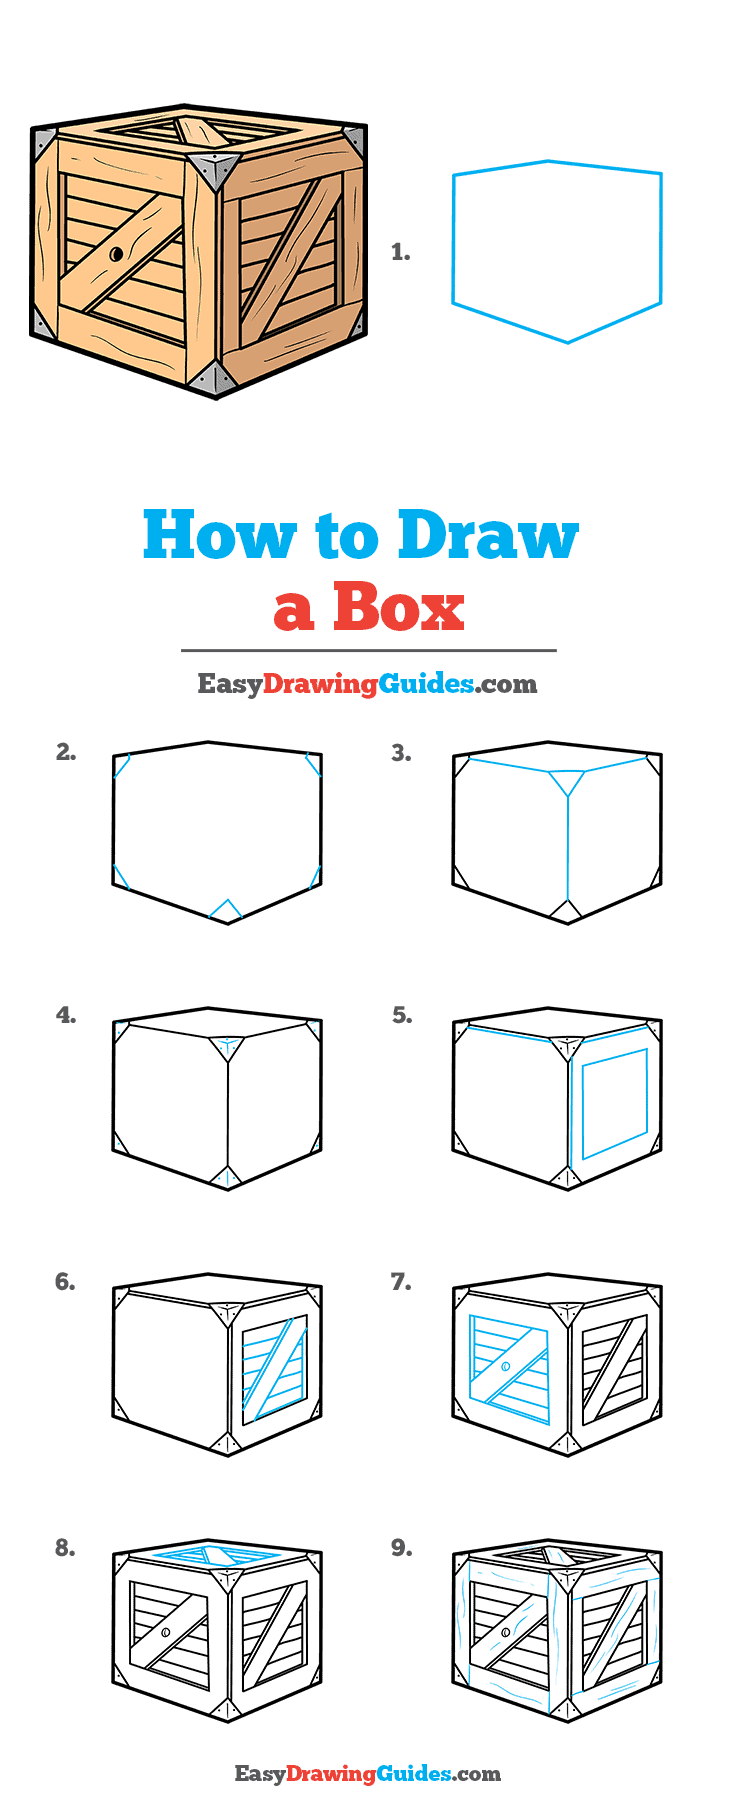 How to Draw a Box Step by Step Tutorial Image